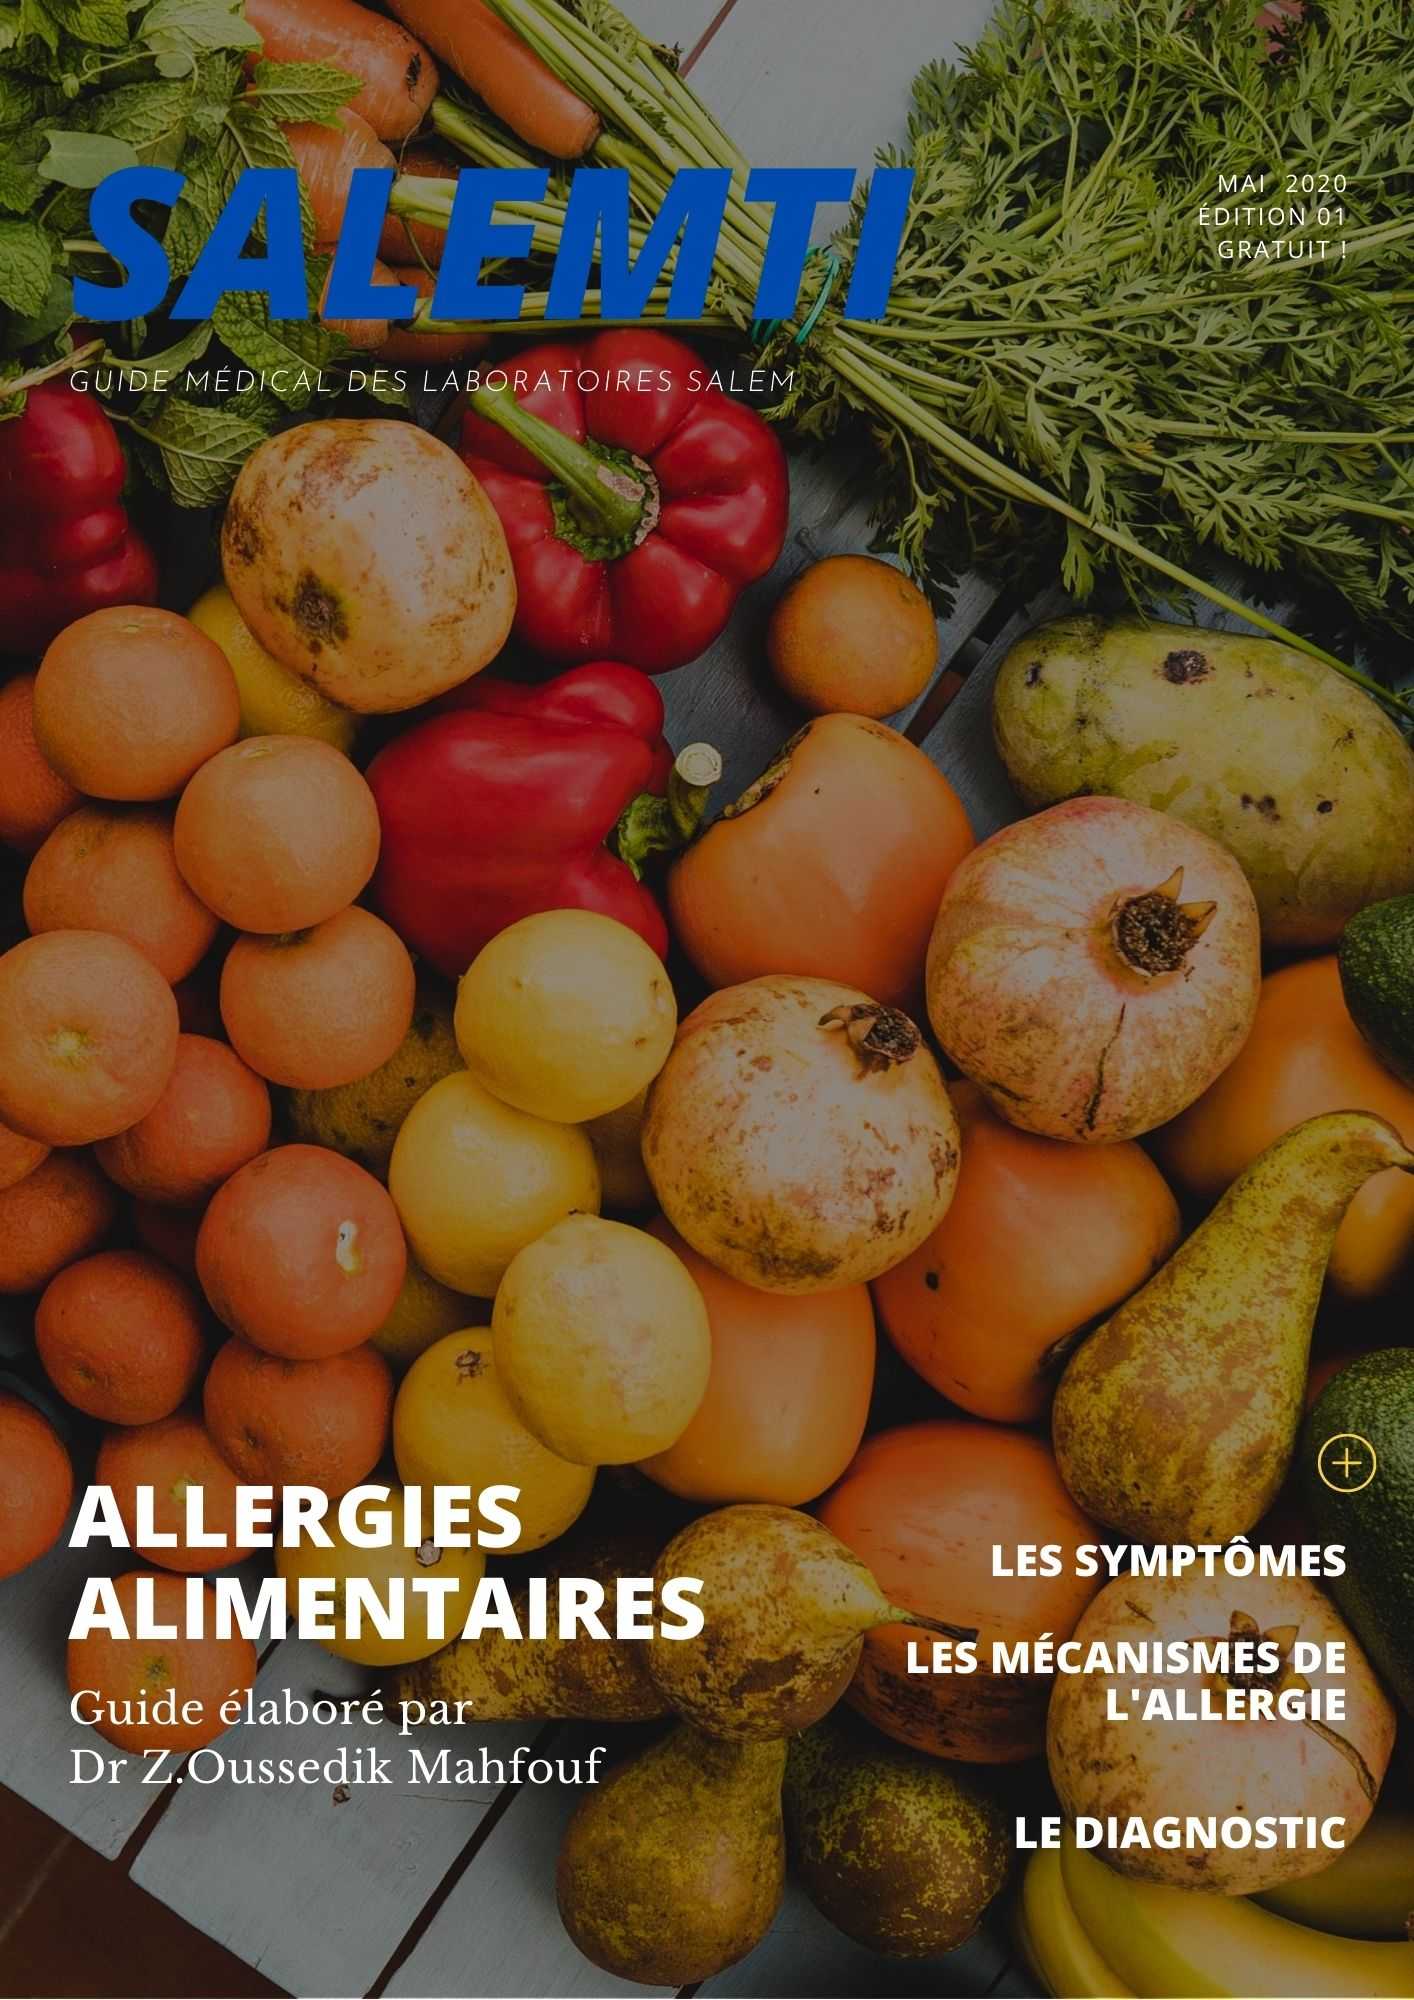 allergie, allergies alimentaires, intoxication, guide, guide santé, guide laboratoires salem, guide labosalem,guide salemti